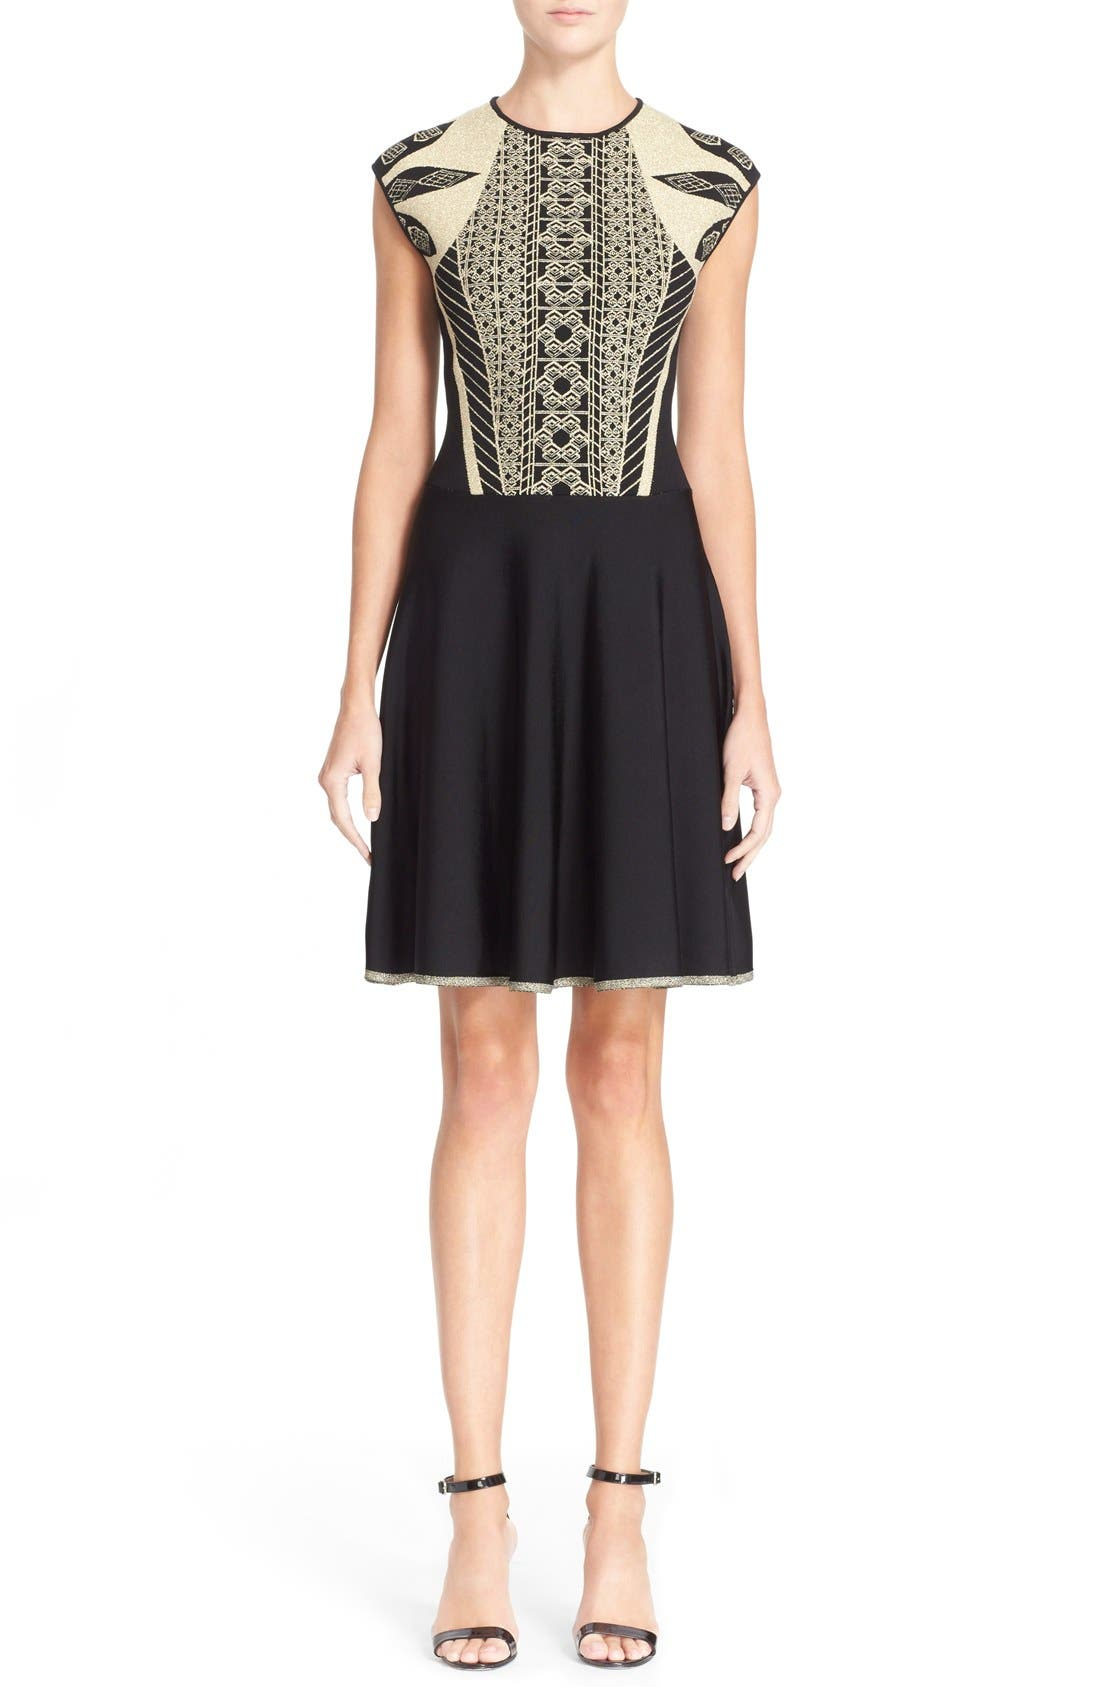 Alternate Image 1 Selected - Ted Baker London 'Jenkin' Metallic Jacquard Fit & Flare Dress